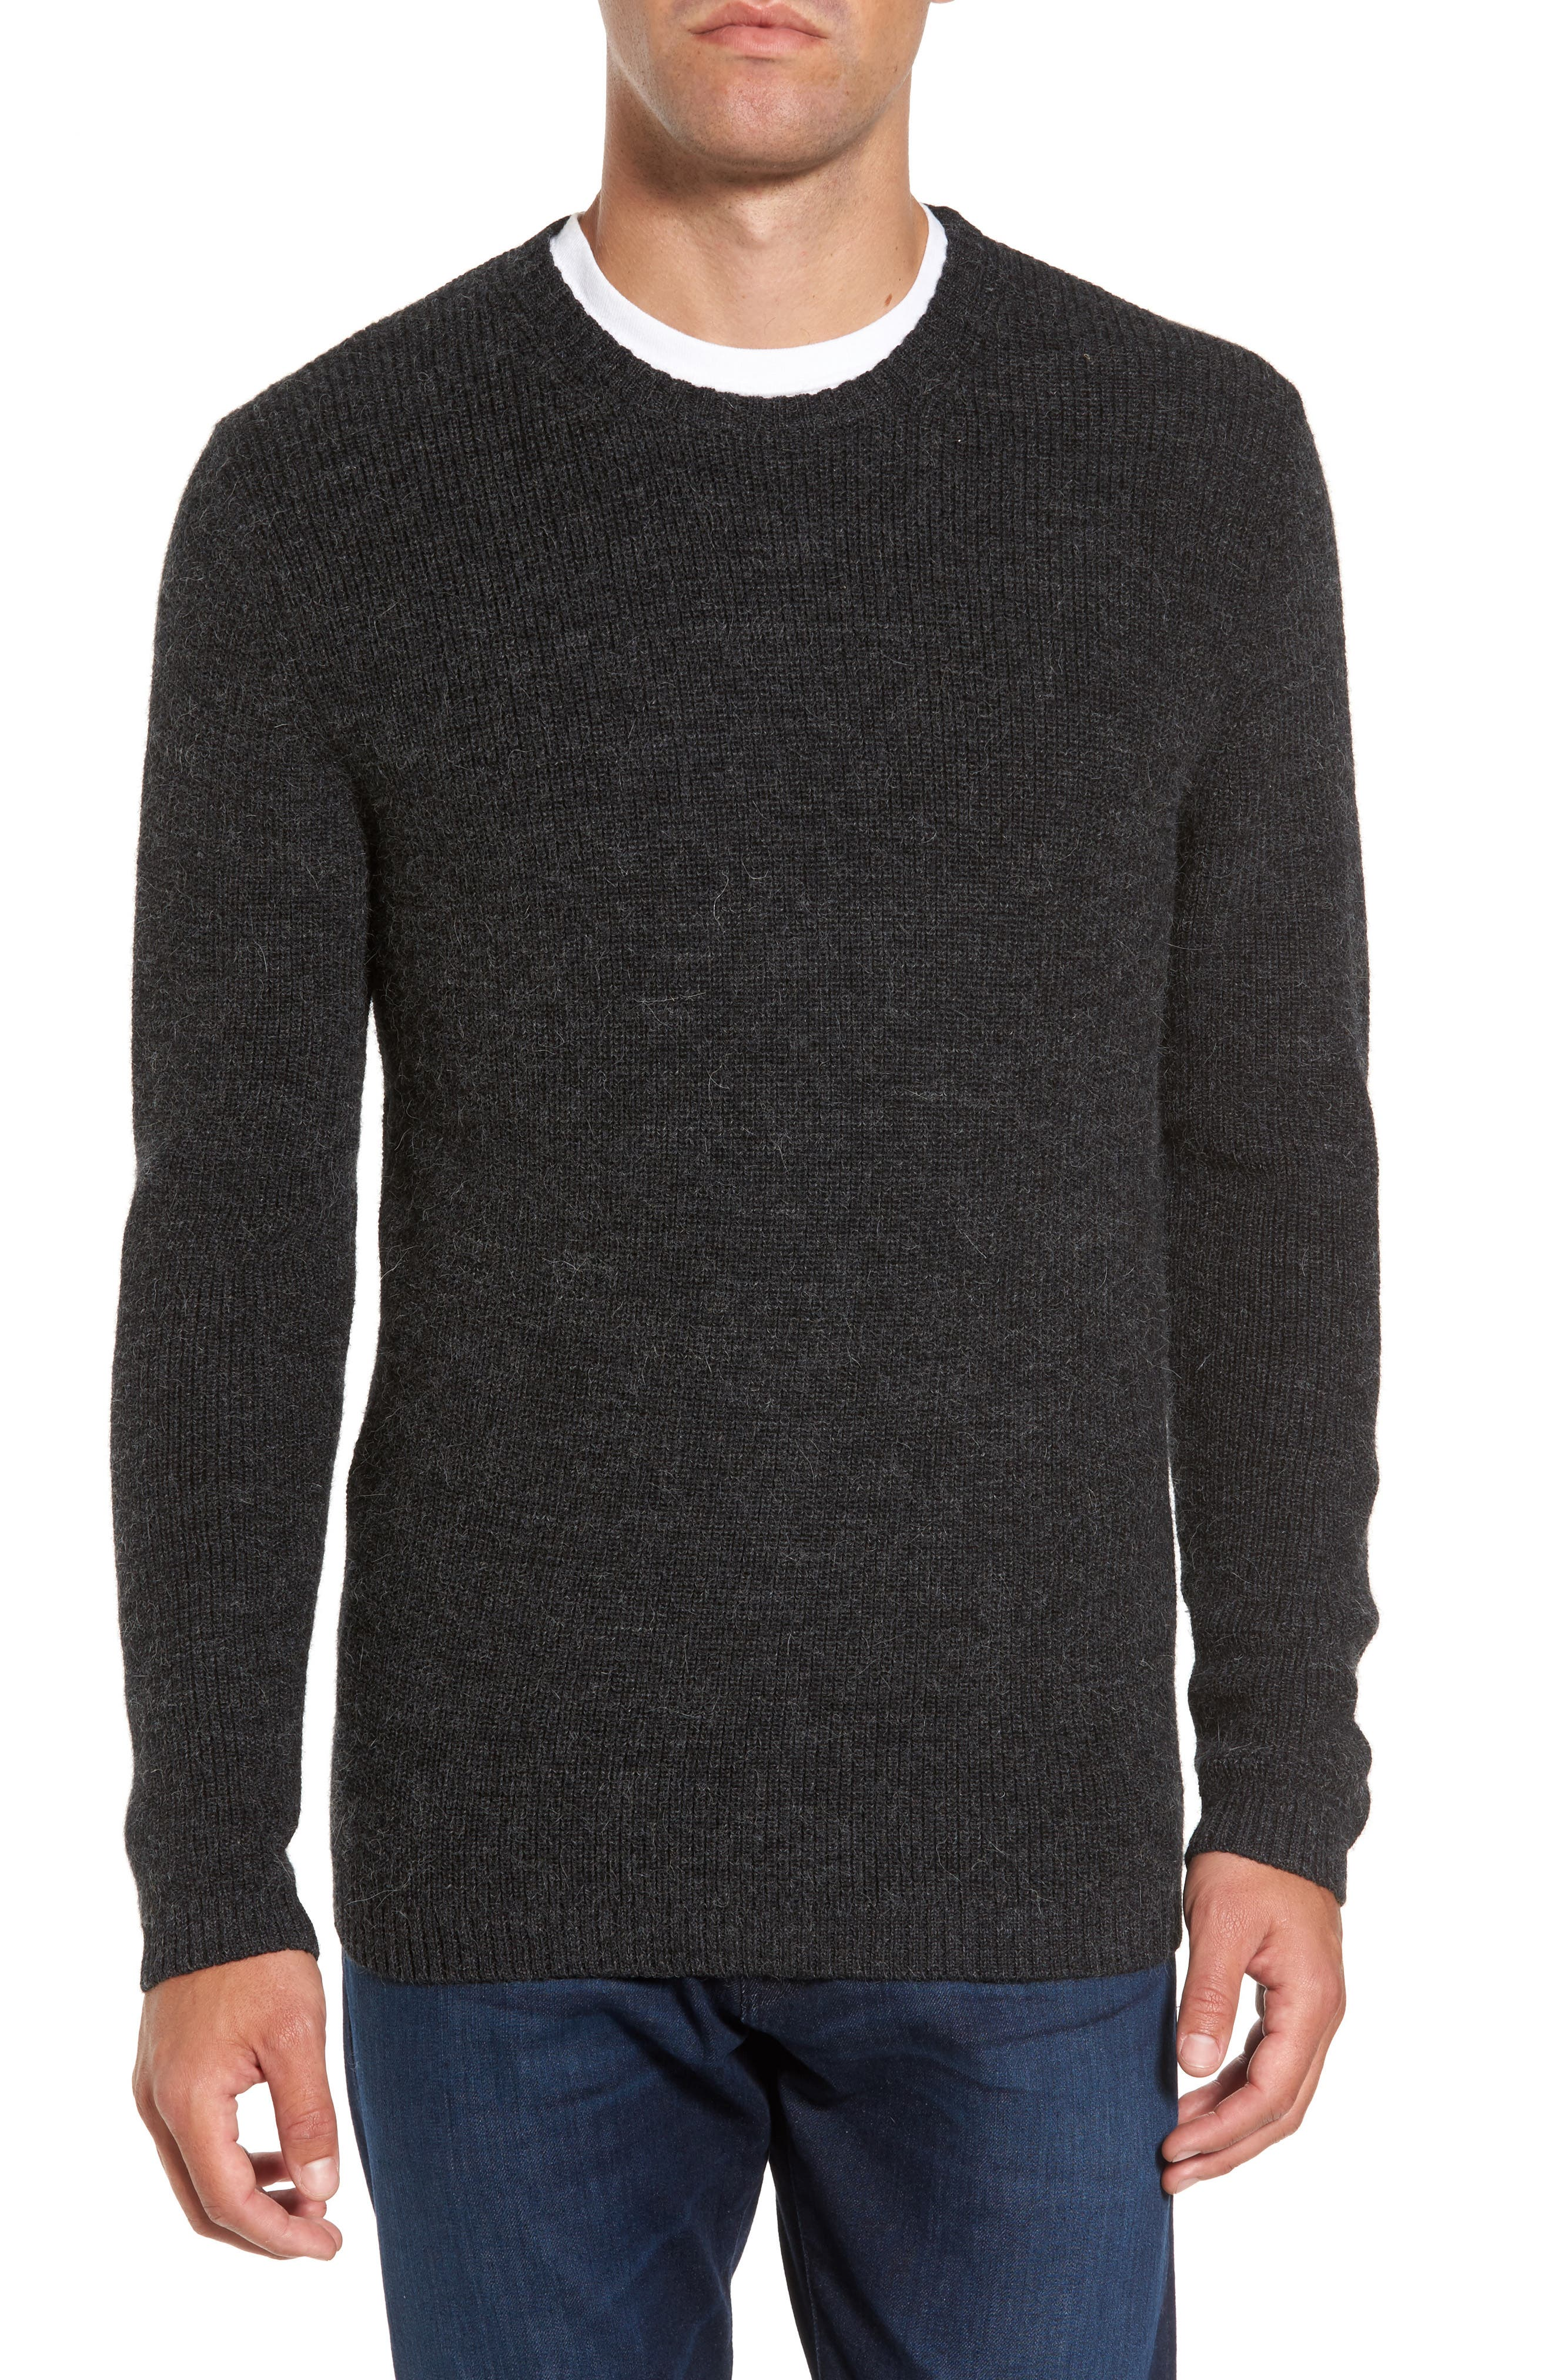 Whalers Bay Merino Wool Blend Sweater,                         Main,                         color, 001